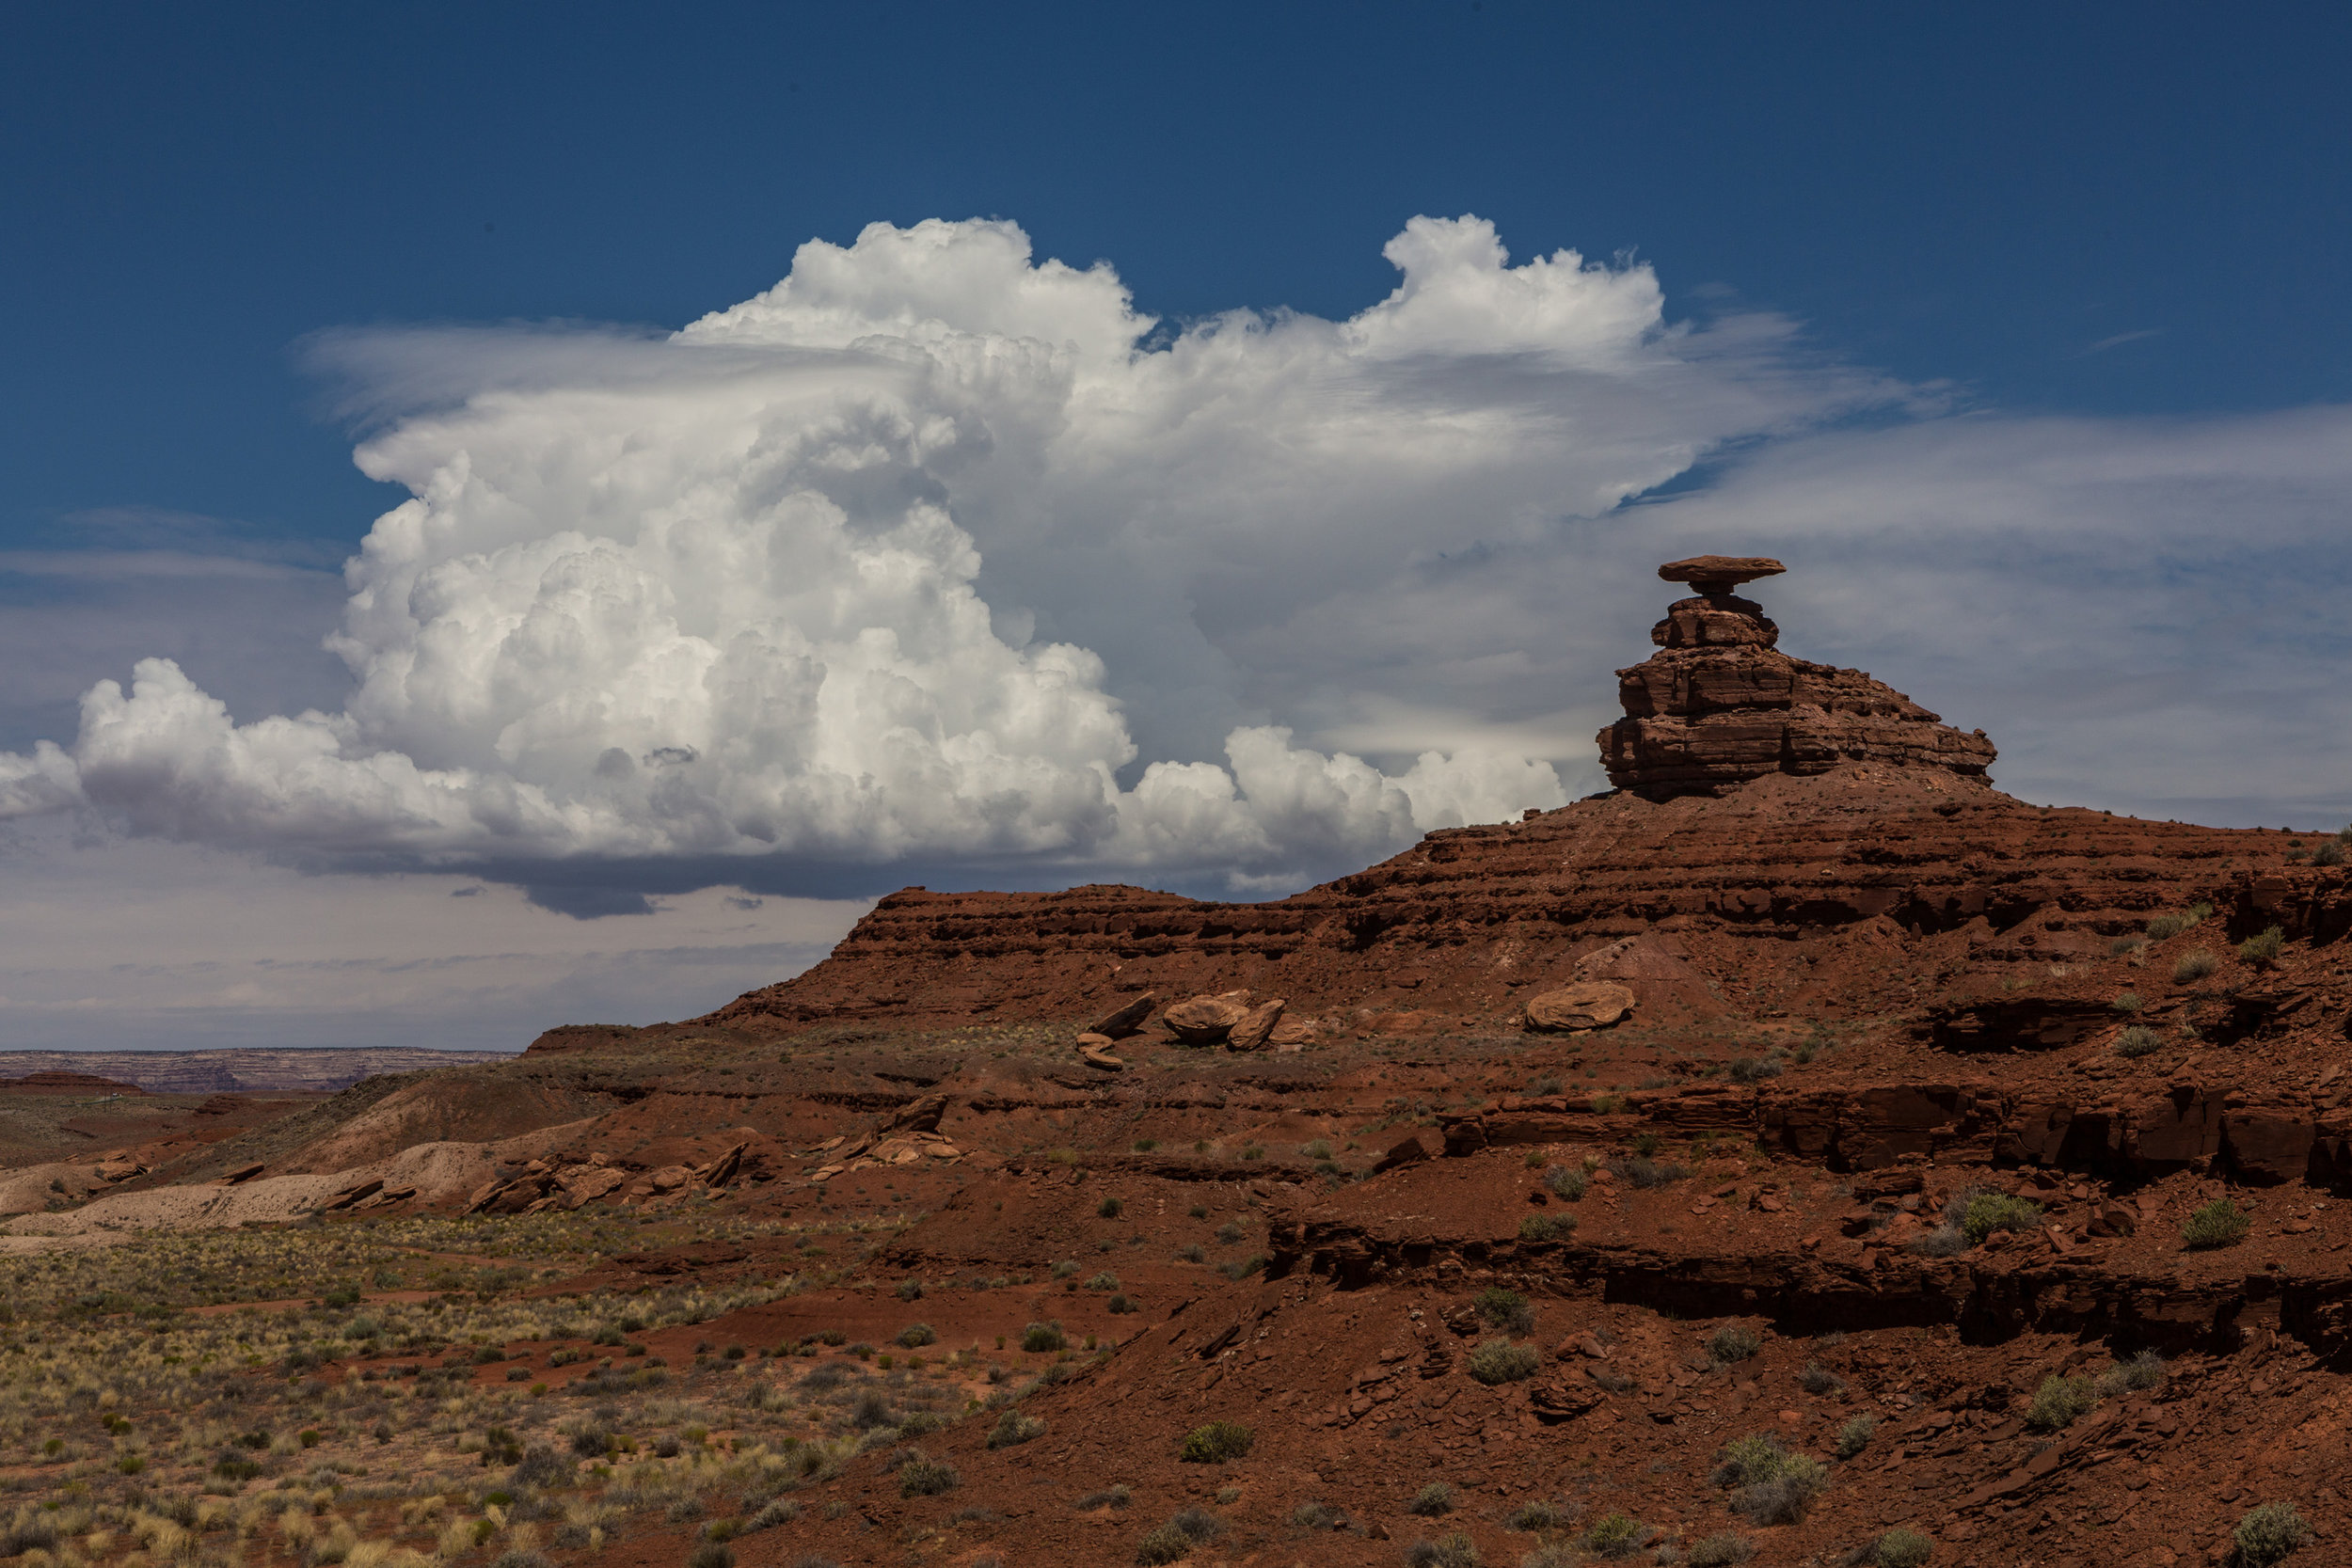 0816_FourCorners-2332.jpg